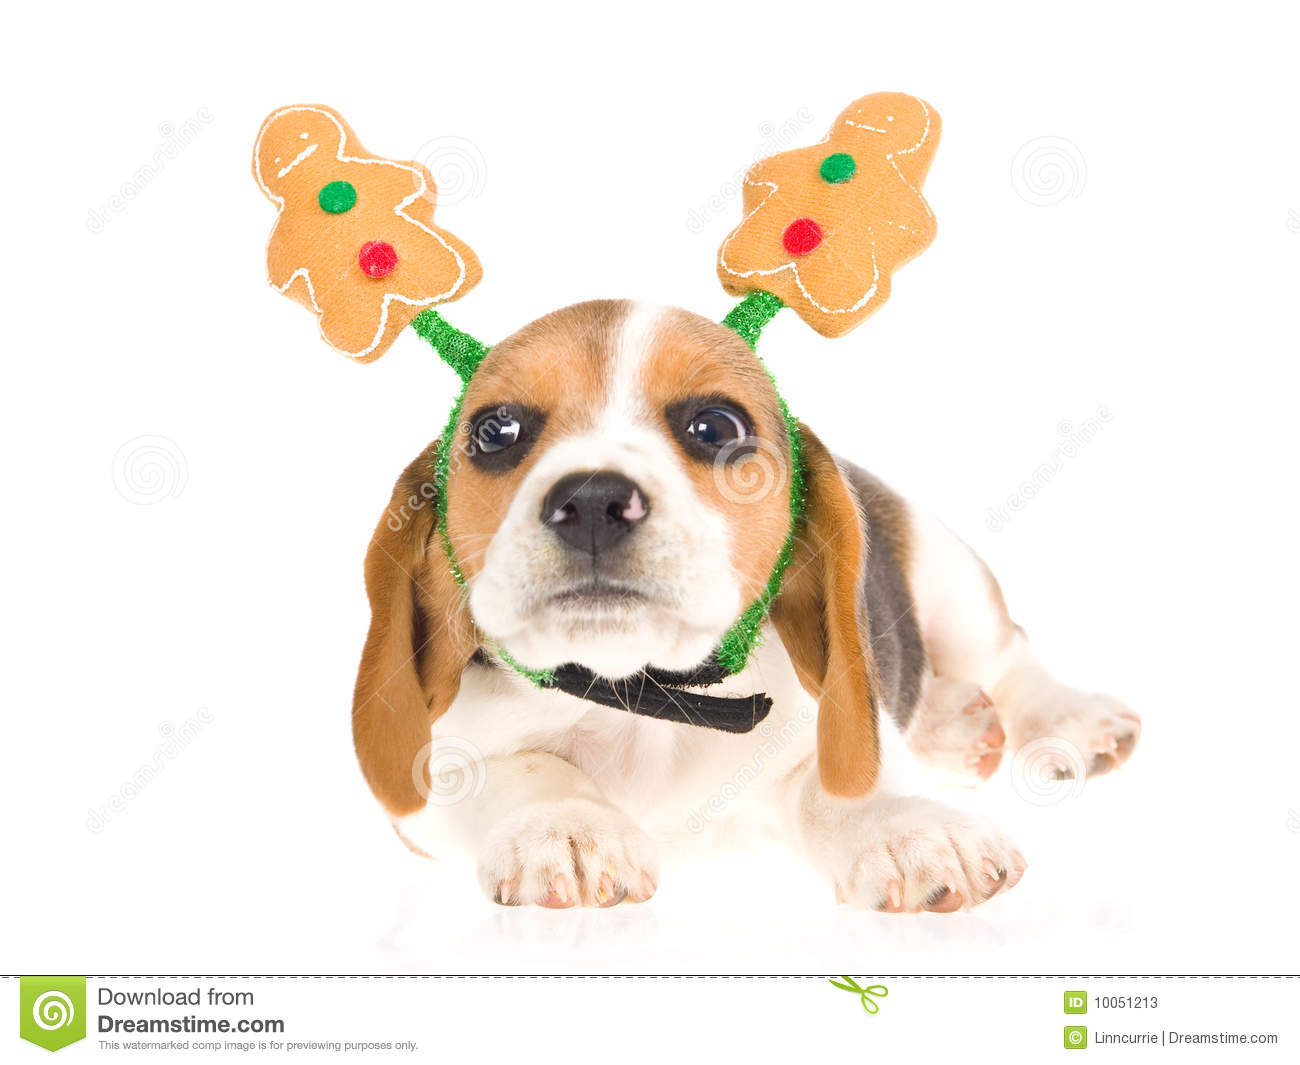 Funny Beagle Puppy Gingerbread Man Hat Stock Photos - Image: 10051213